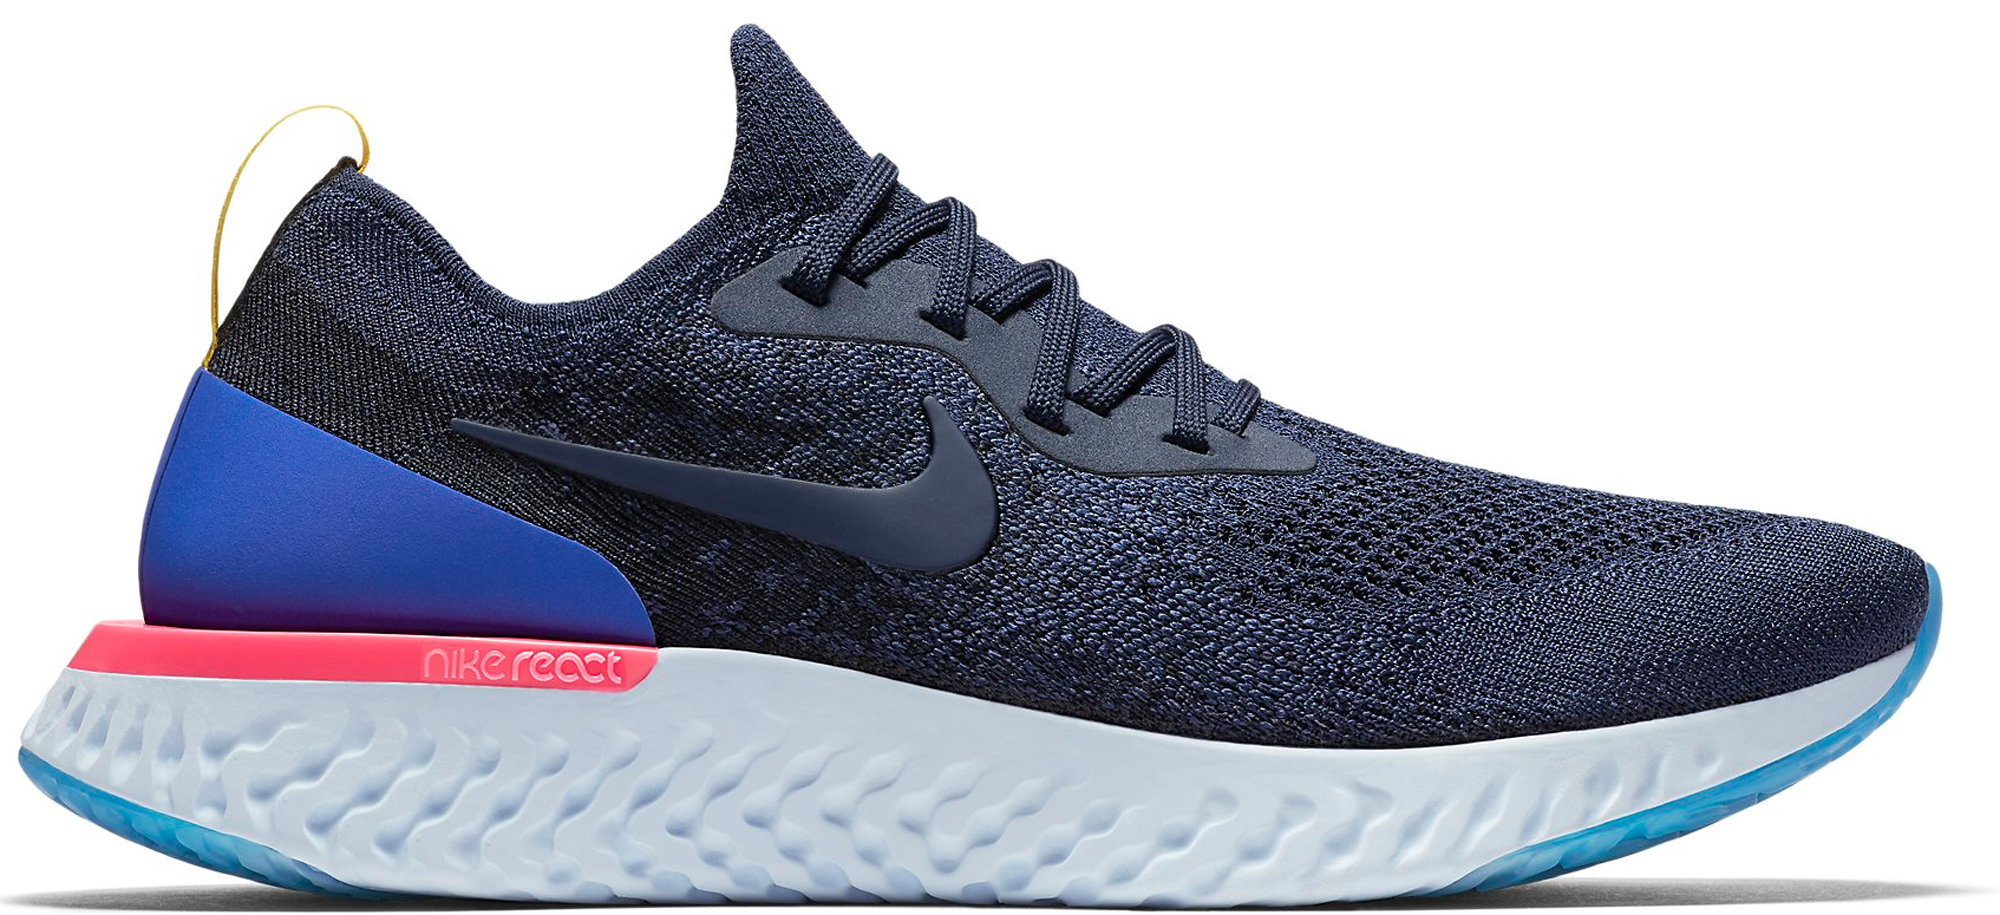 da2a427612c Nike Epic React Flyknit College Navy - StockX News